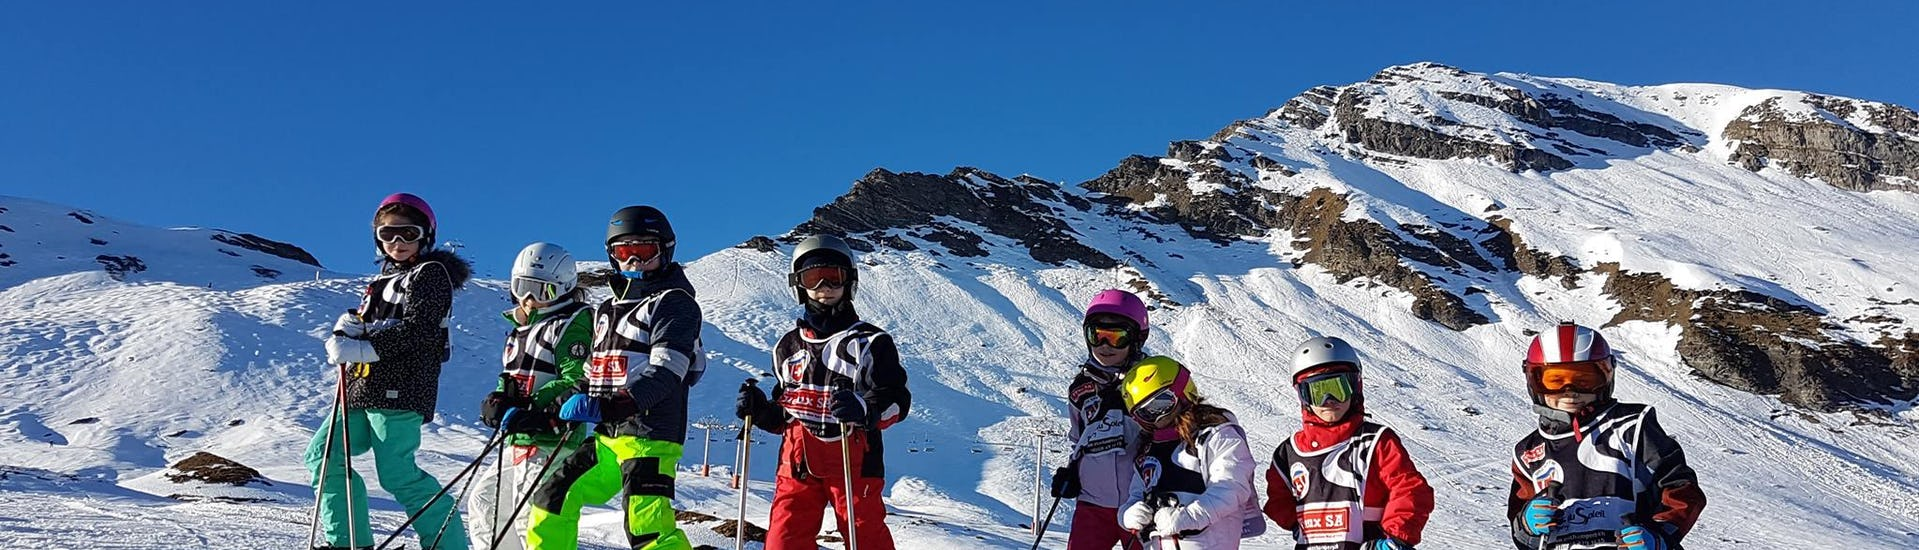 Ski Lessons for Kids (7-17 years) - All Levels